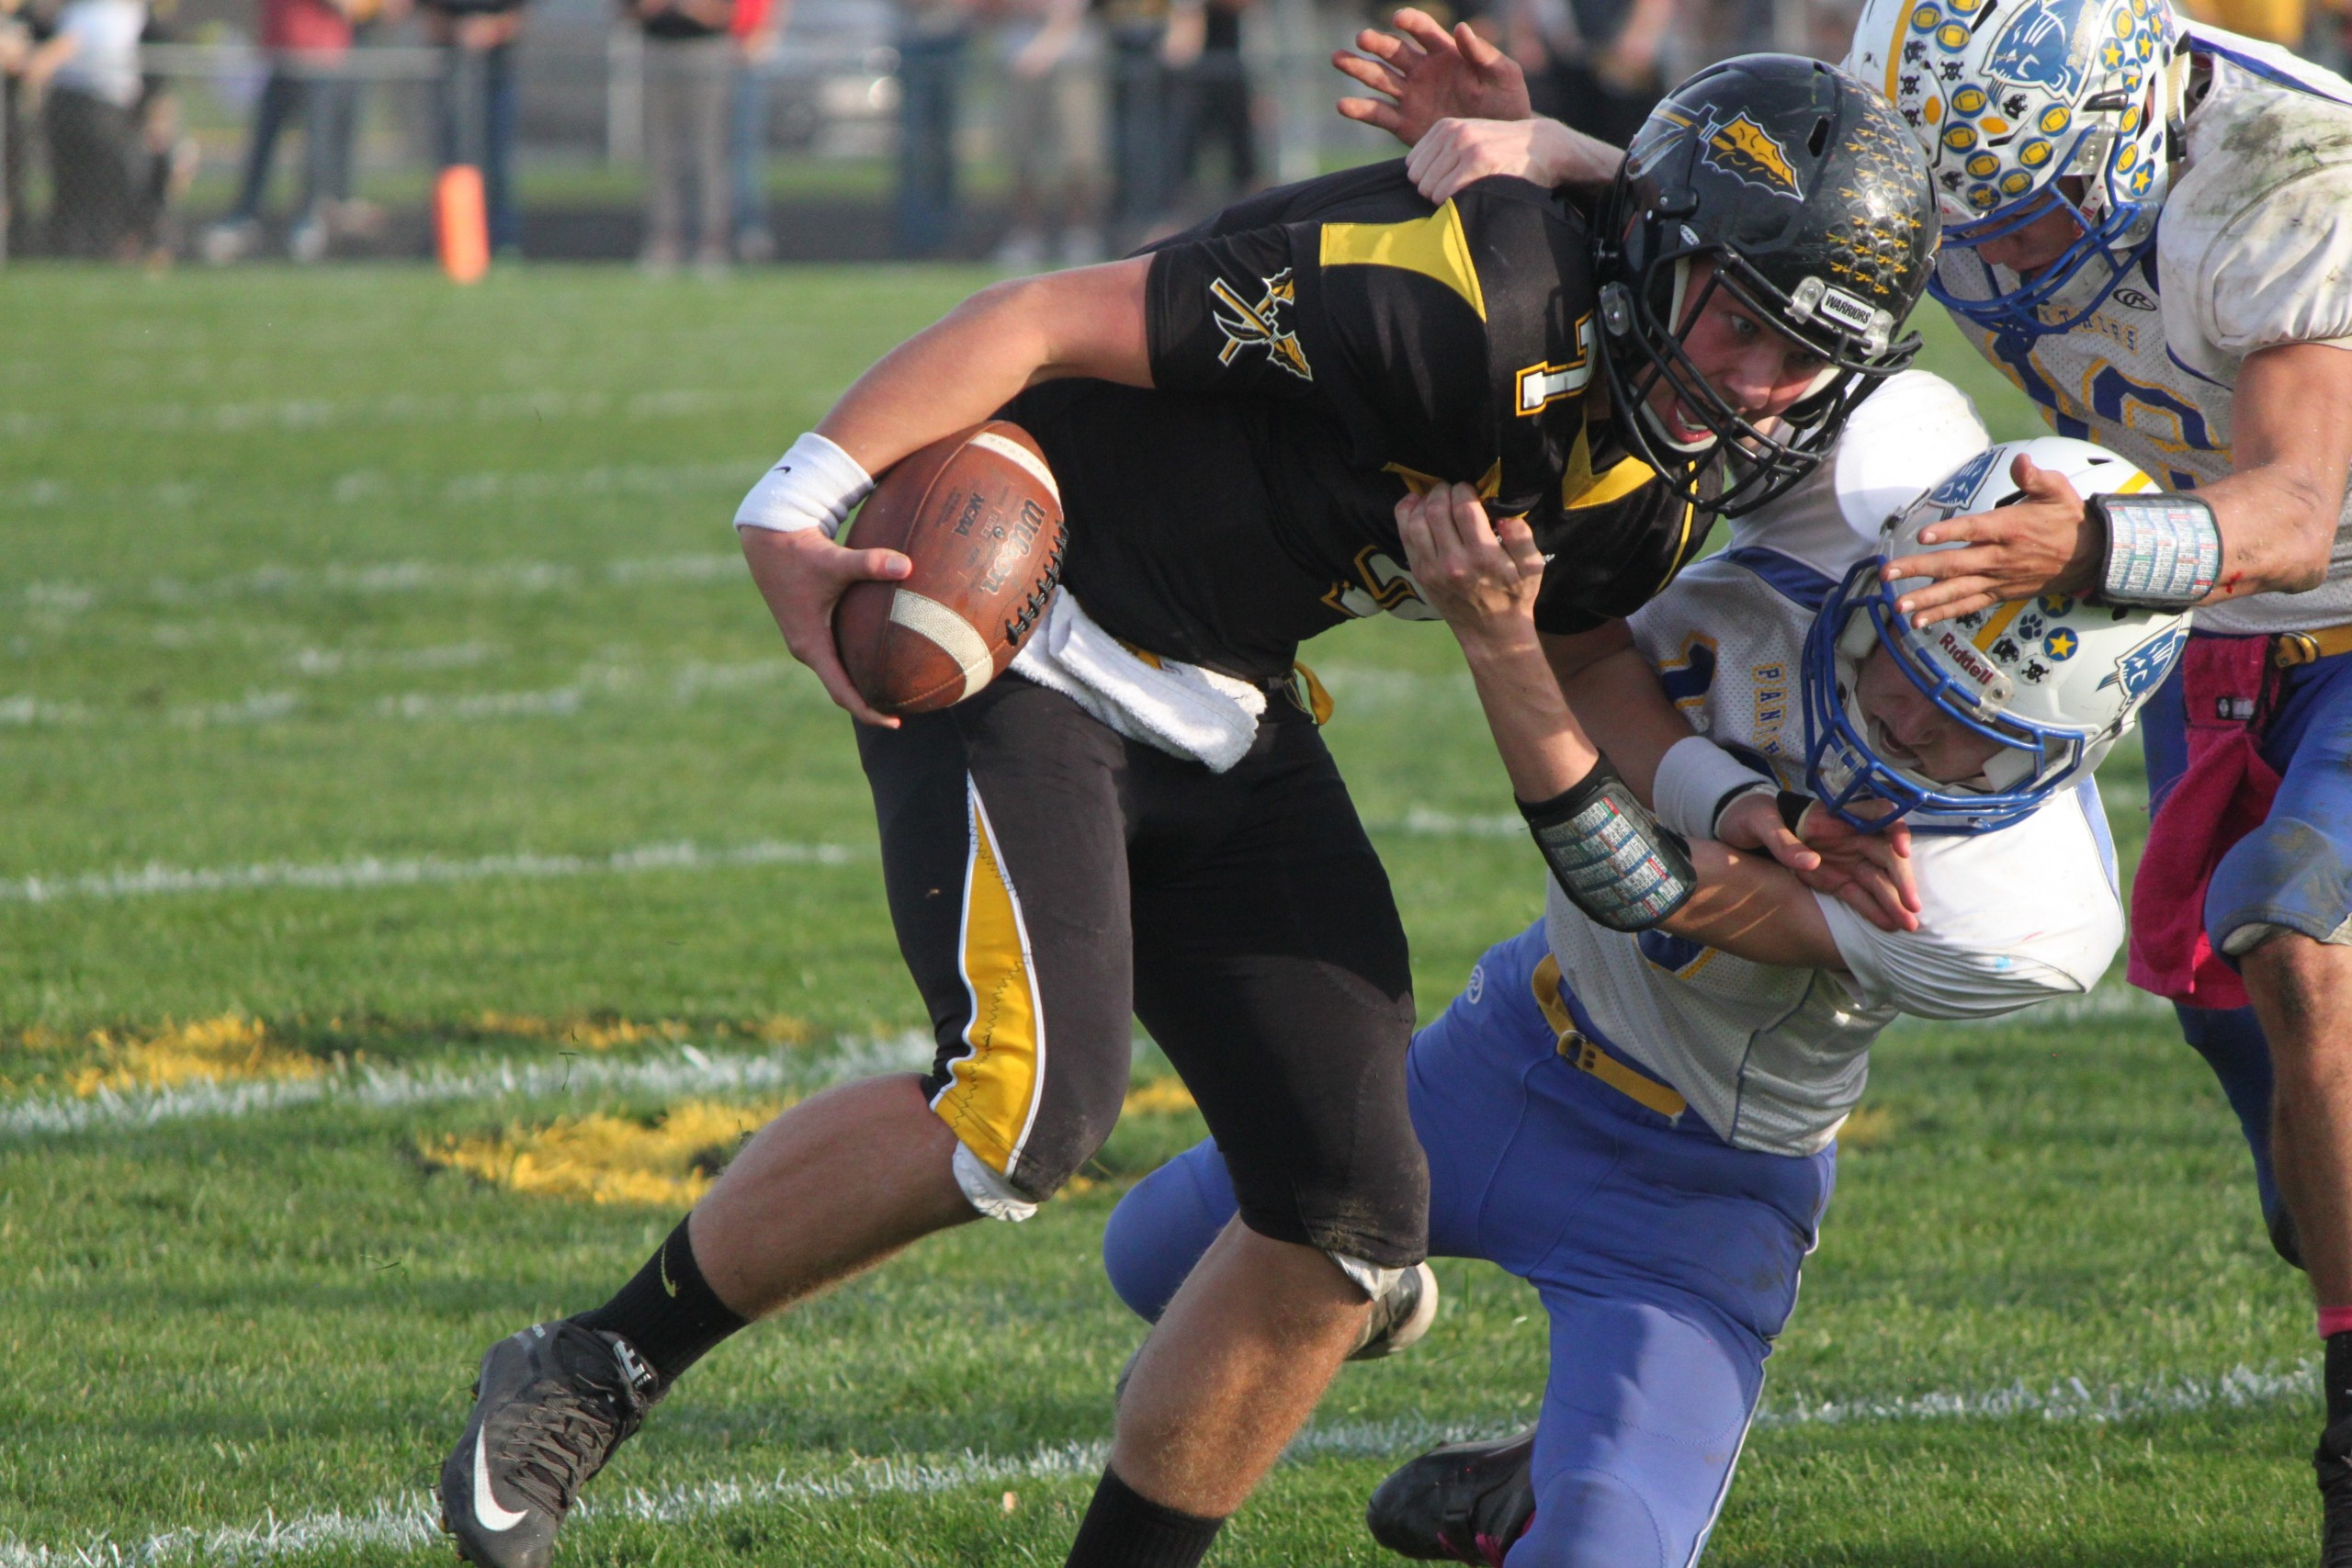 Tuscola opens the playoff season with a home game win against Oblong